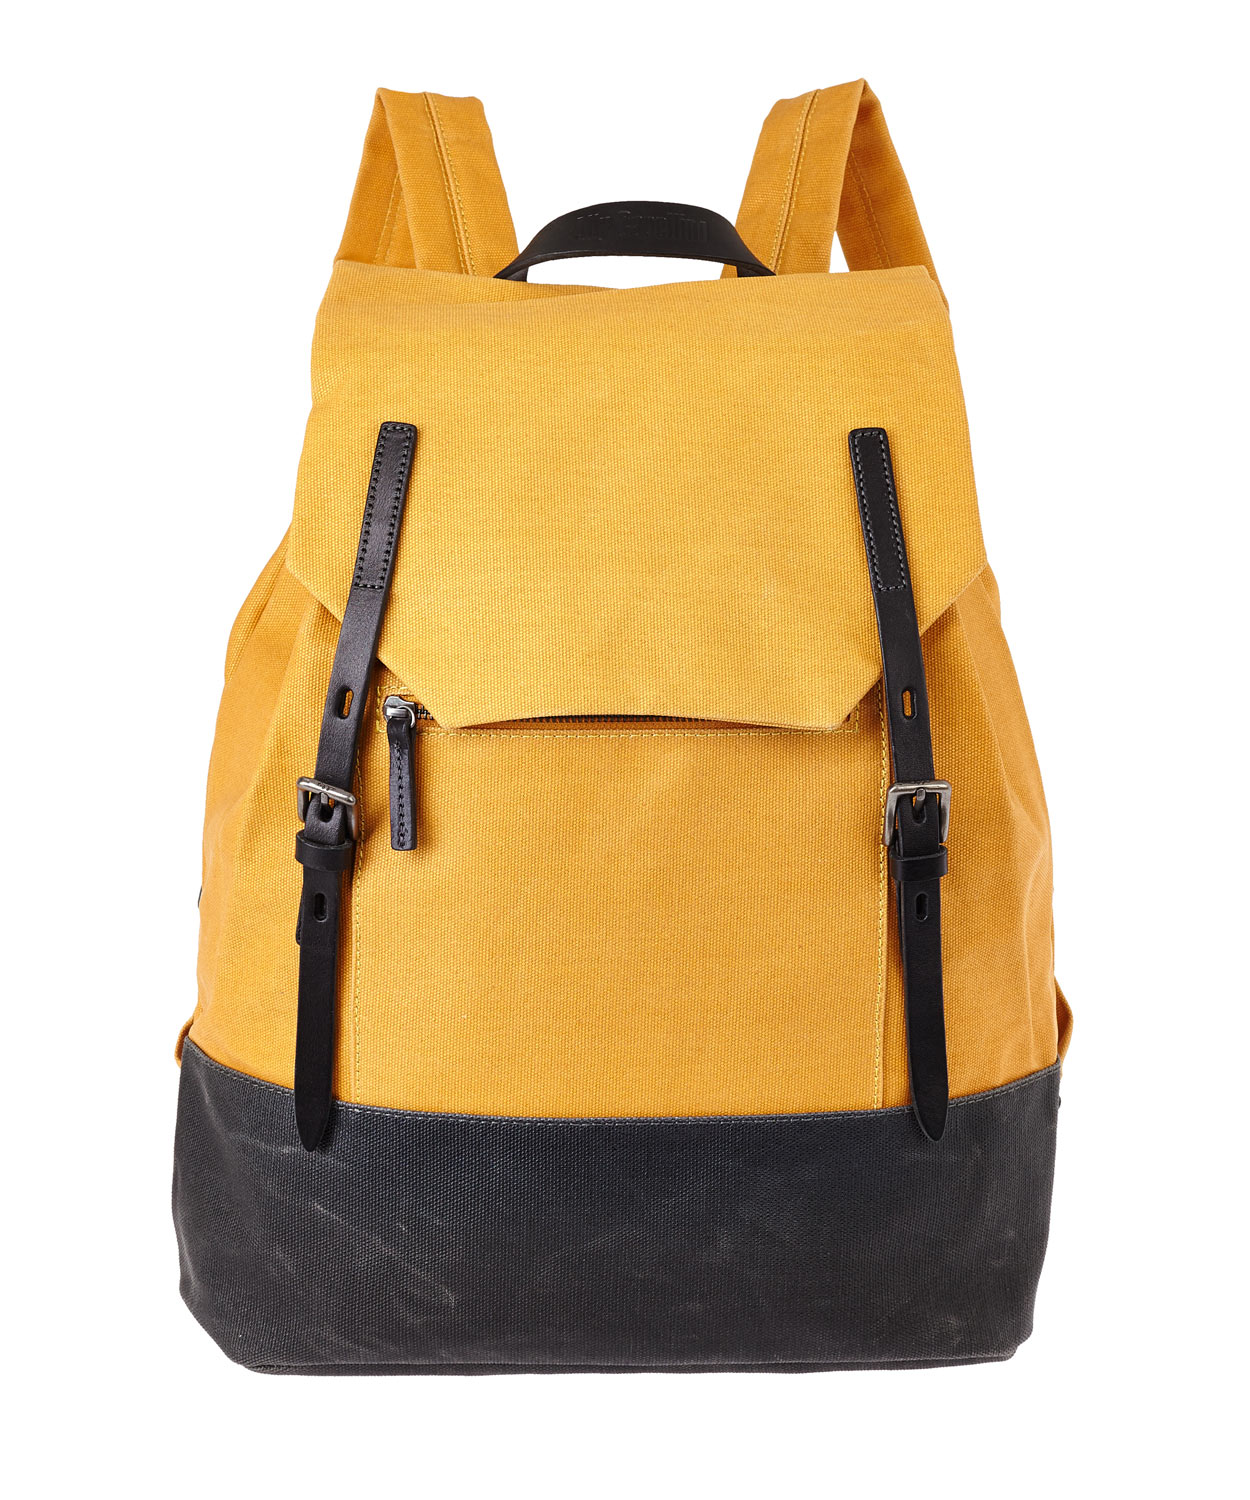 Lyst - Ally Capellino Mustard Dean Waxed Canvas Backpack in Yellow ... dd20250731